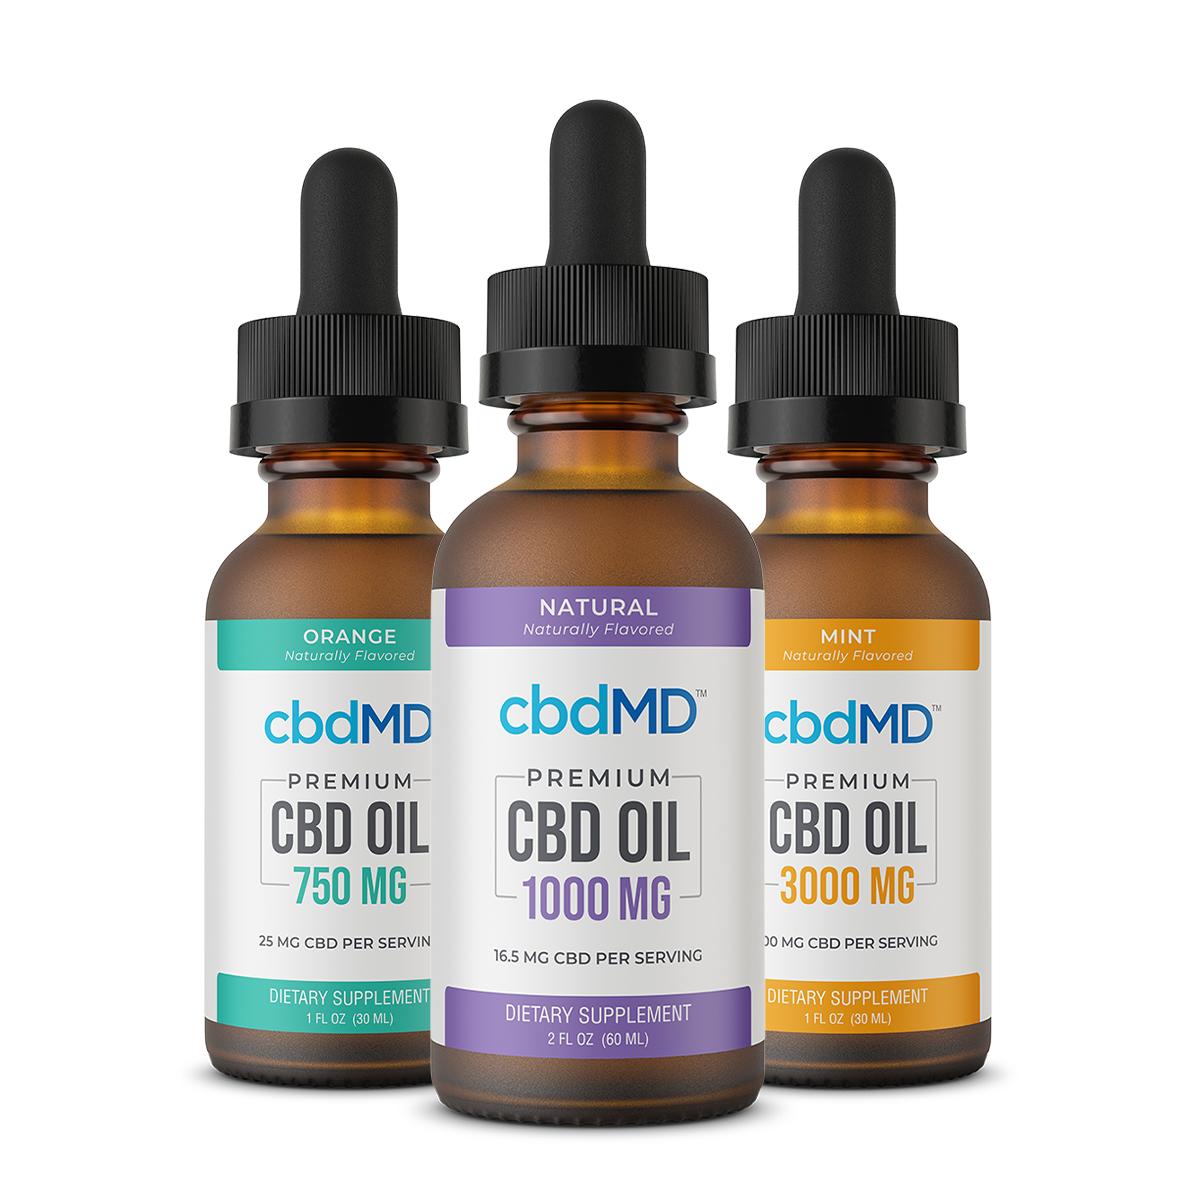 Premium CBD Oil Tincture 300mg Natural Flavor and Premium CBD Oil Tincture 750mg Natural Flavor and Premium CBD Oil Tincture 1500mg Natural Flavor